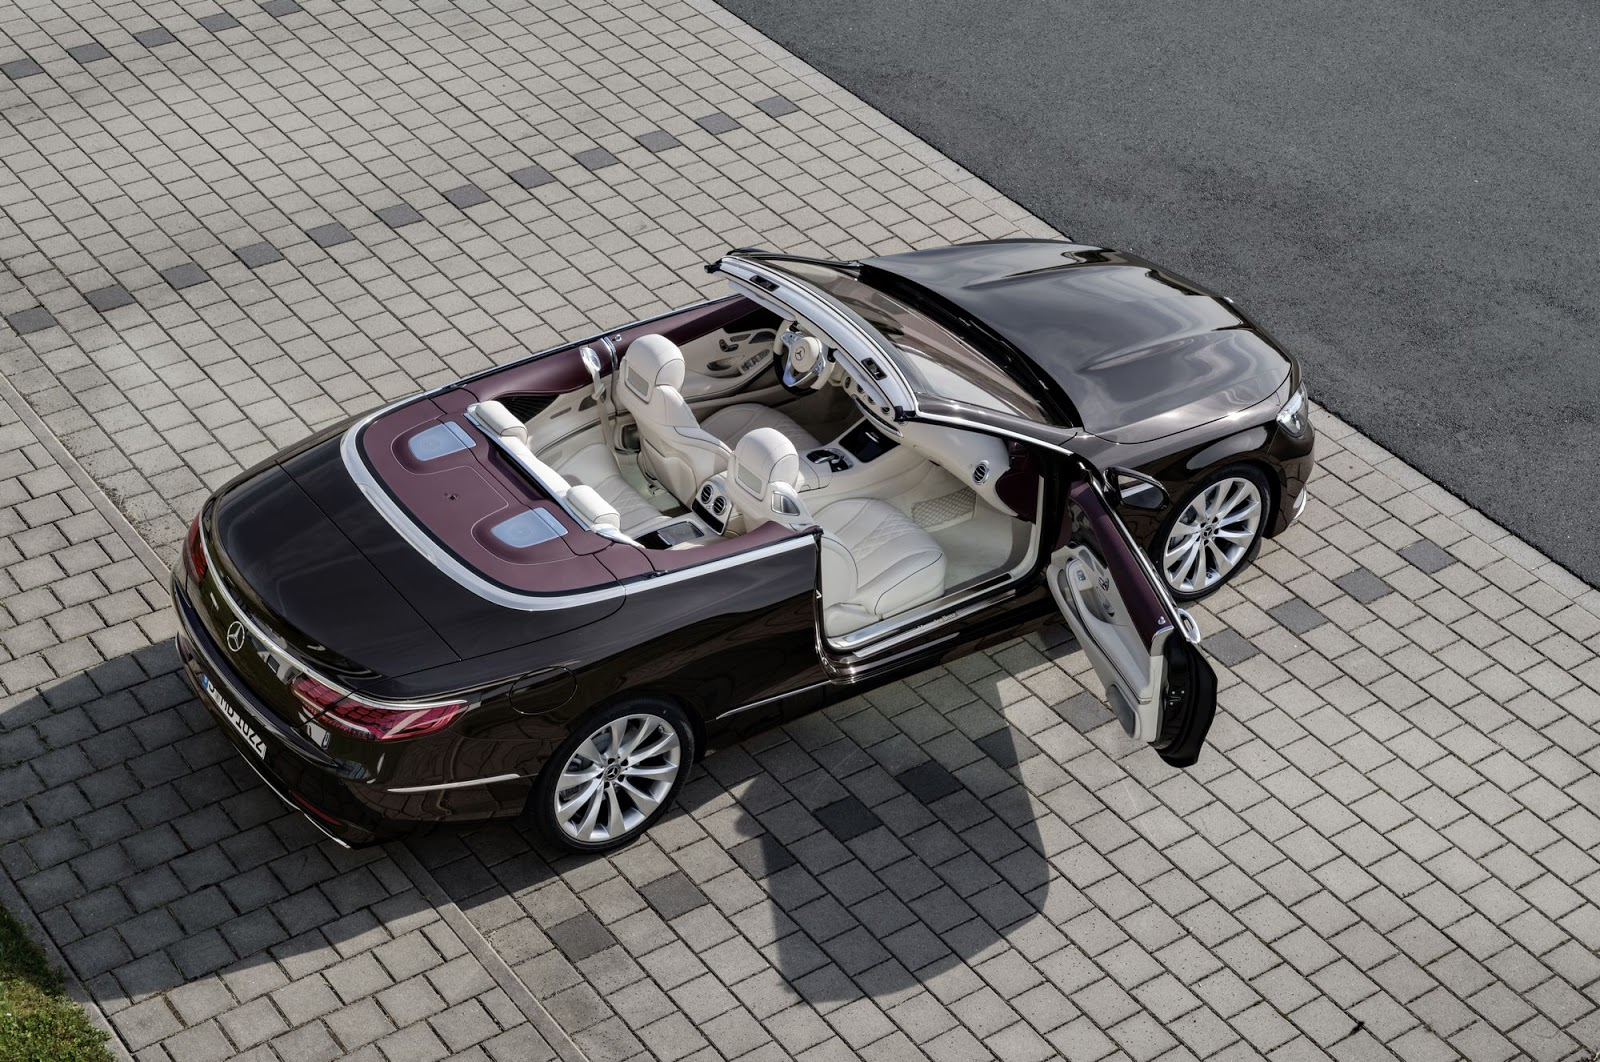 Mercedes-Benz S-Klasse Cabriolet; A 217; Exterieur: designo mokkaschwarz; Interieur: designo Leder porzellan/tizianrot; Zierteile: designo Klavierlack flowing lines schwarz   Mercedes-Benz S-Class Cabriolet; A 217; Exterior: designo mocha black; Interior: designo leather porcelain/tizian red; Trim parts: design piano lacquer, black flowing lines